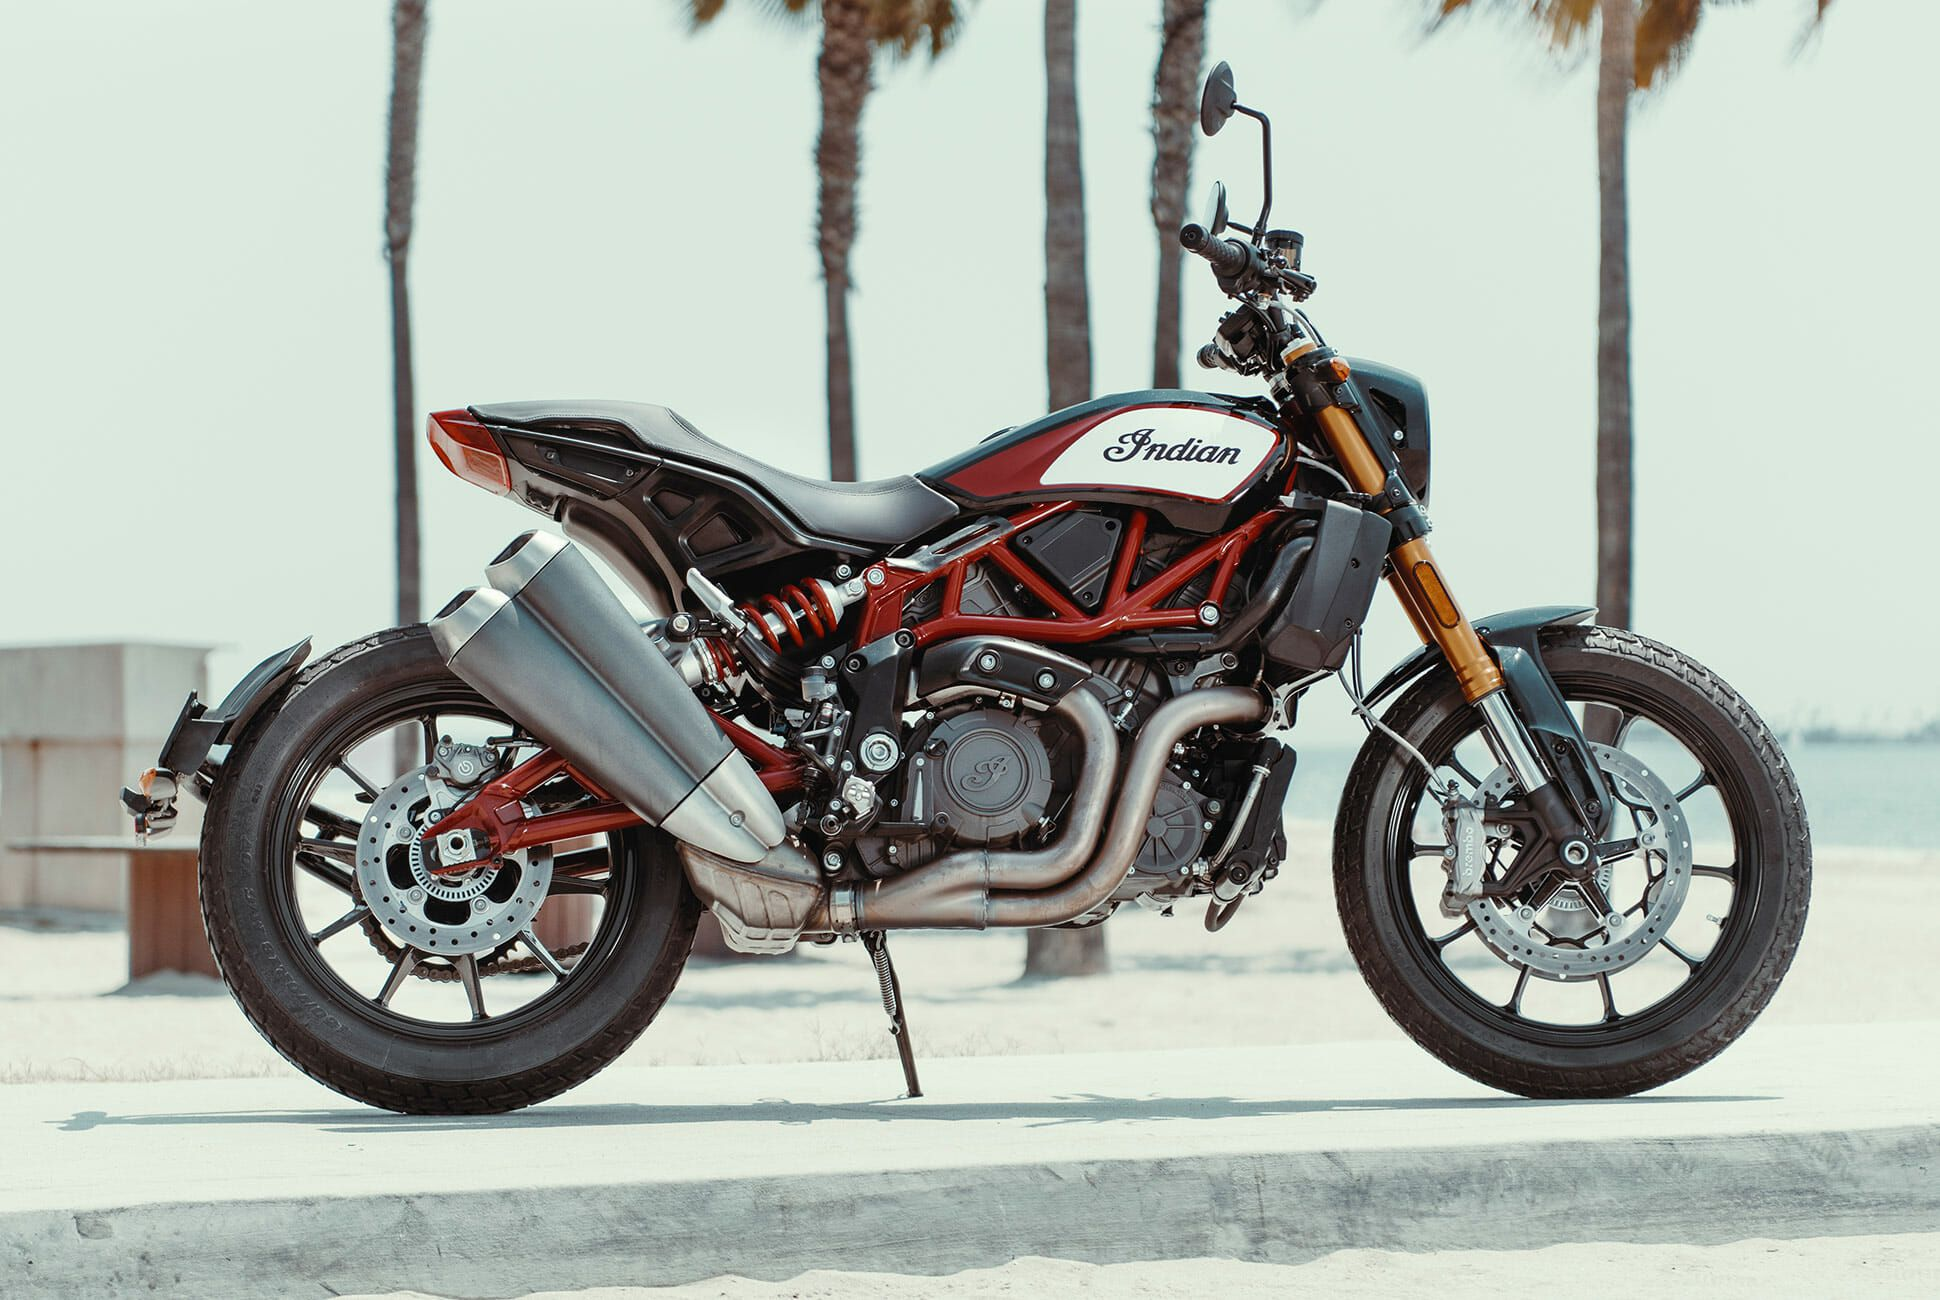 Indian Ftr 1200 >> Ducati Has An Unexpected Rival In The Indian Motorcycle Ftr